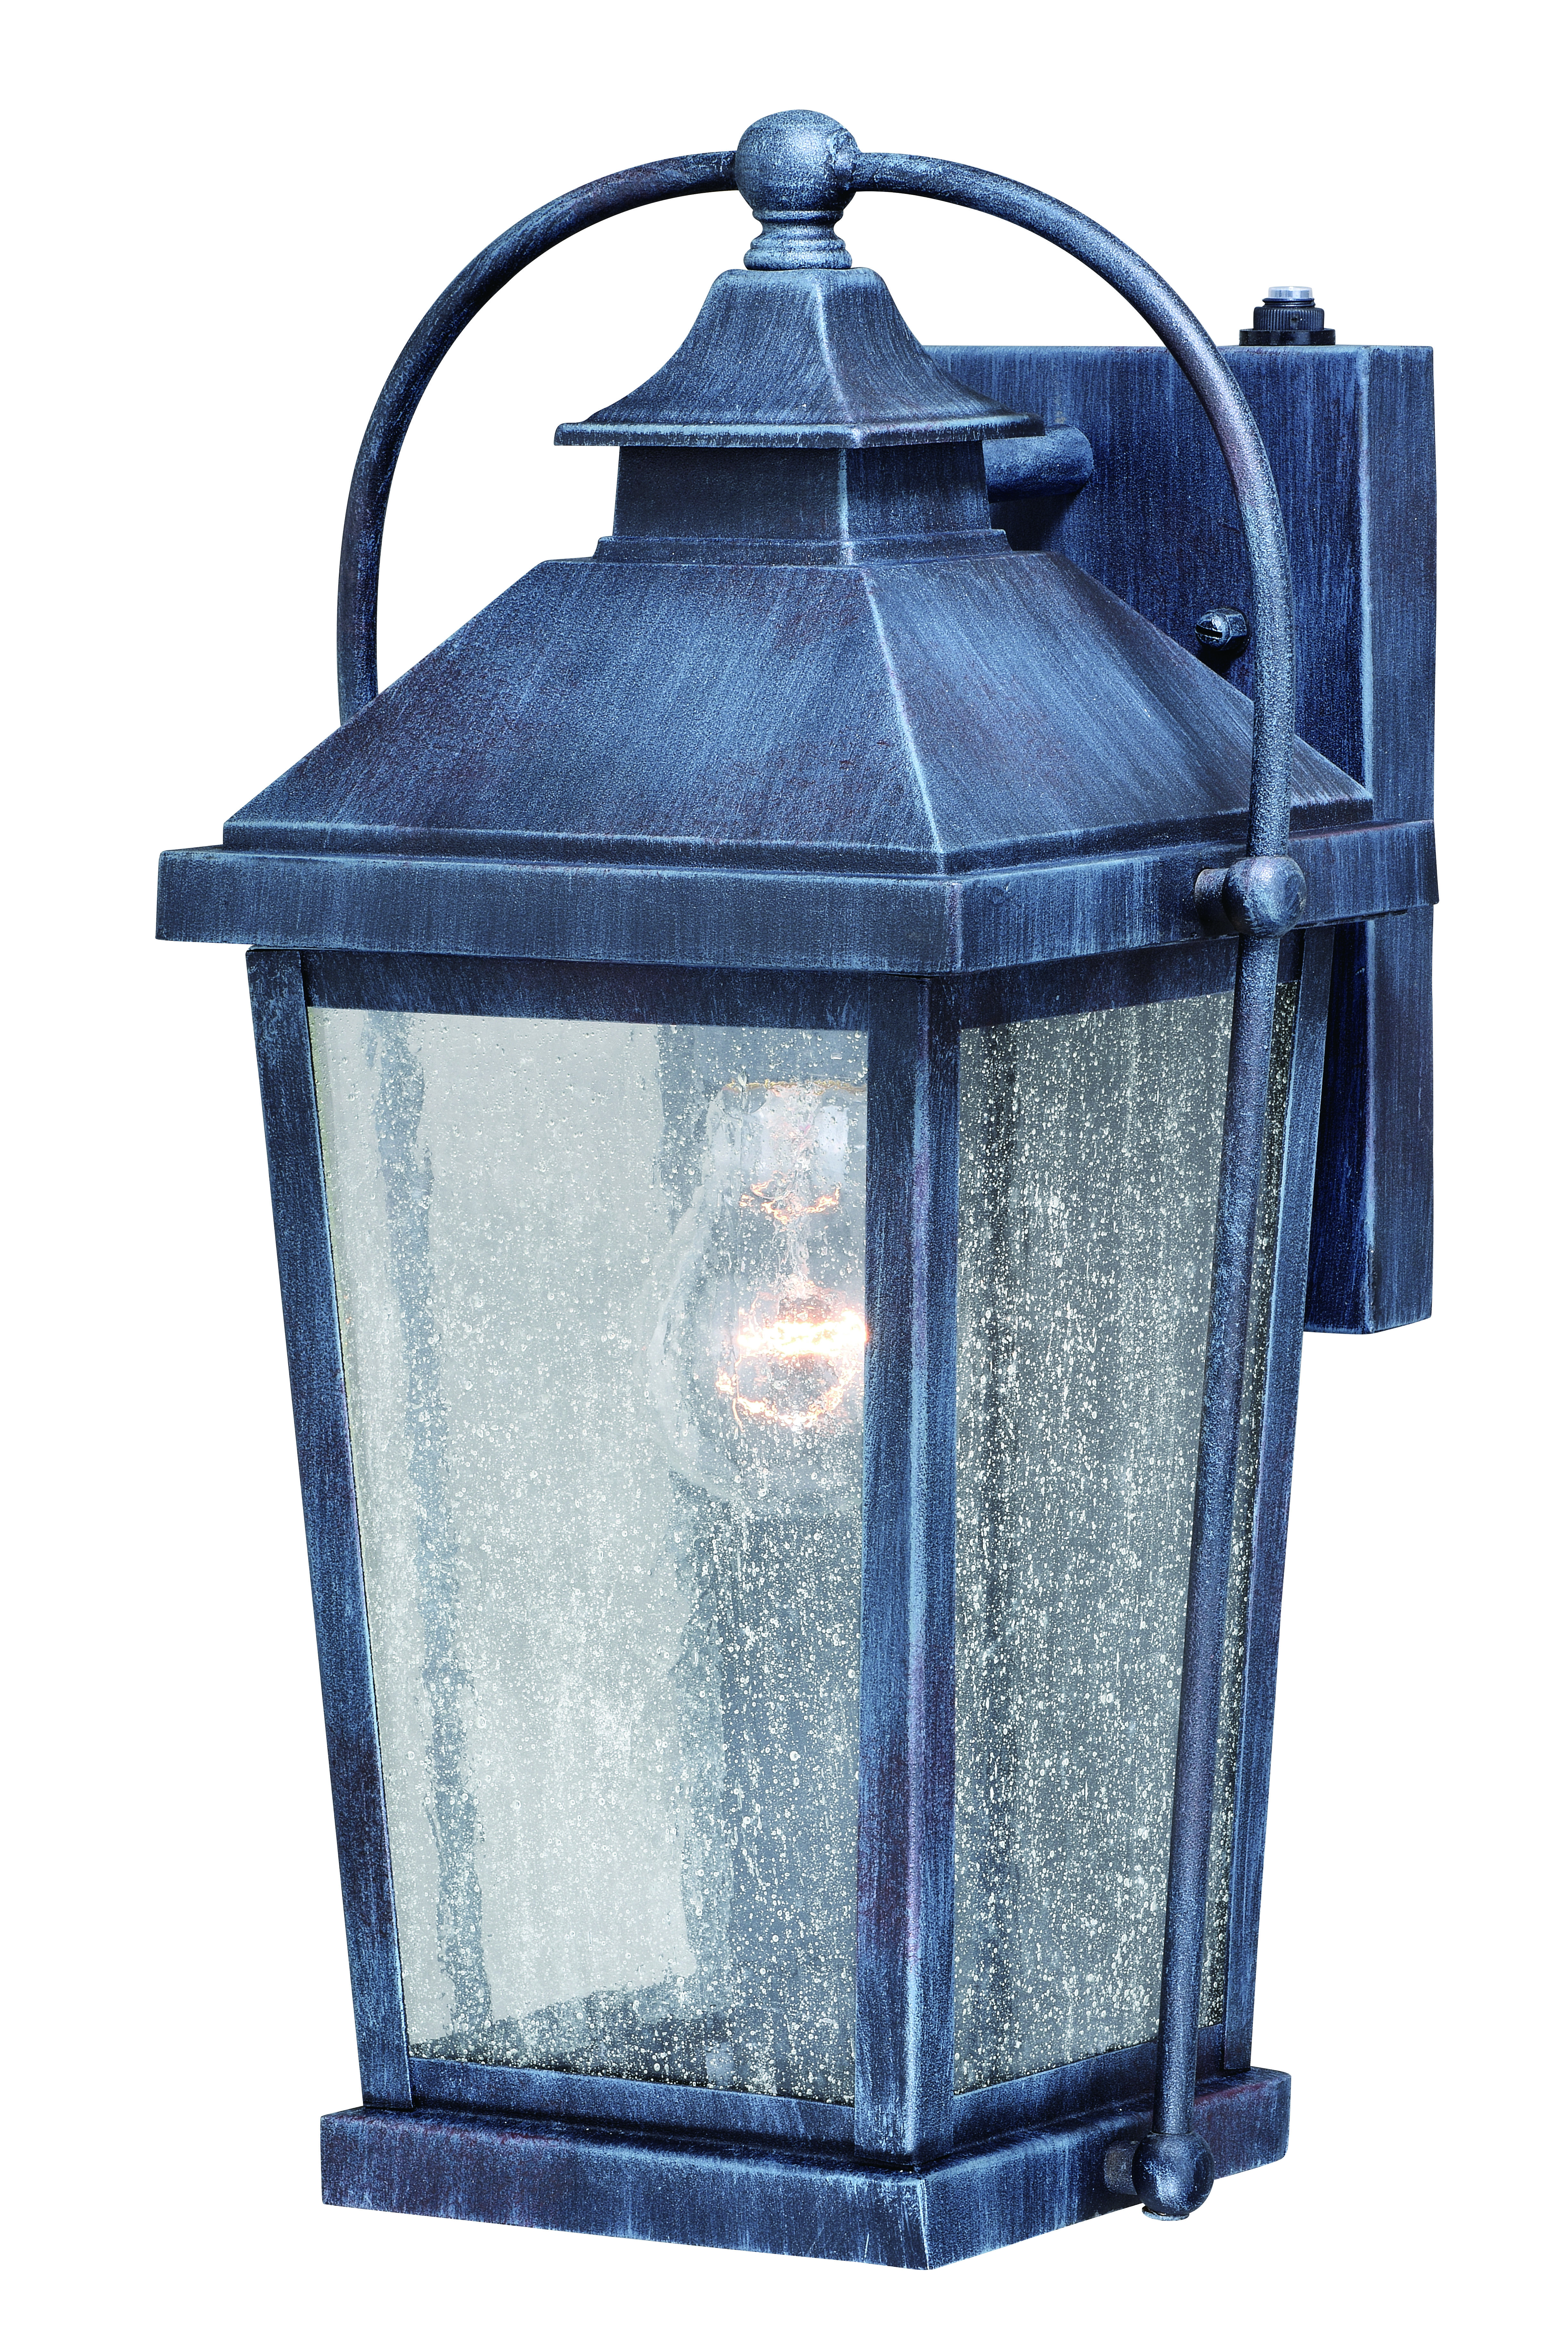 lighting large top dory with chandeliers and fixtures wood chandelier wrought rectangular design home iron barns barn shades black outdoor room light ideas wooden indoor of hunky rustic